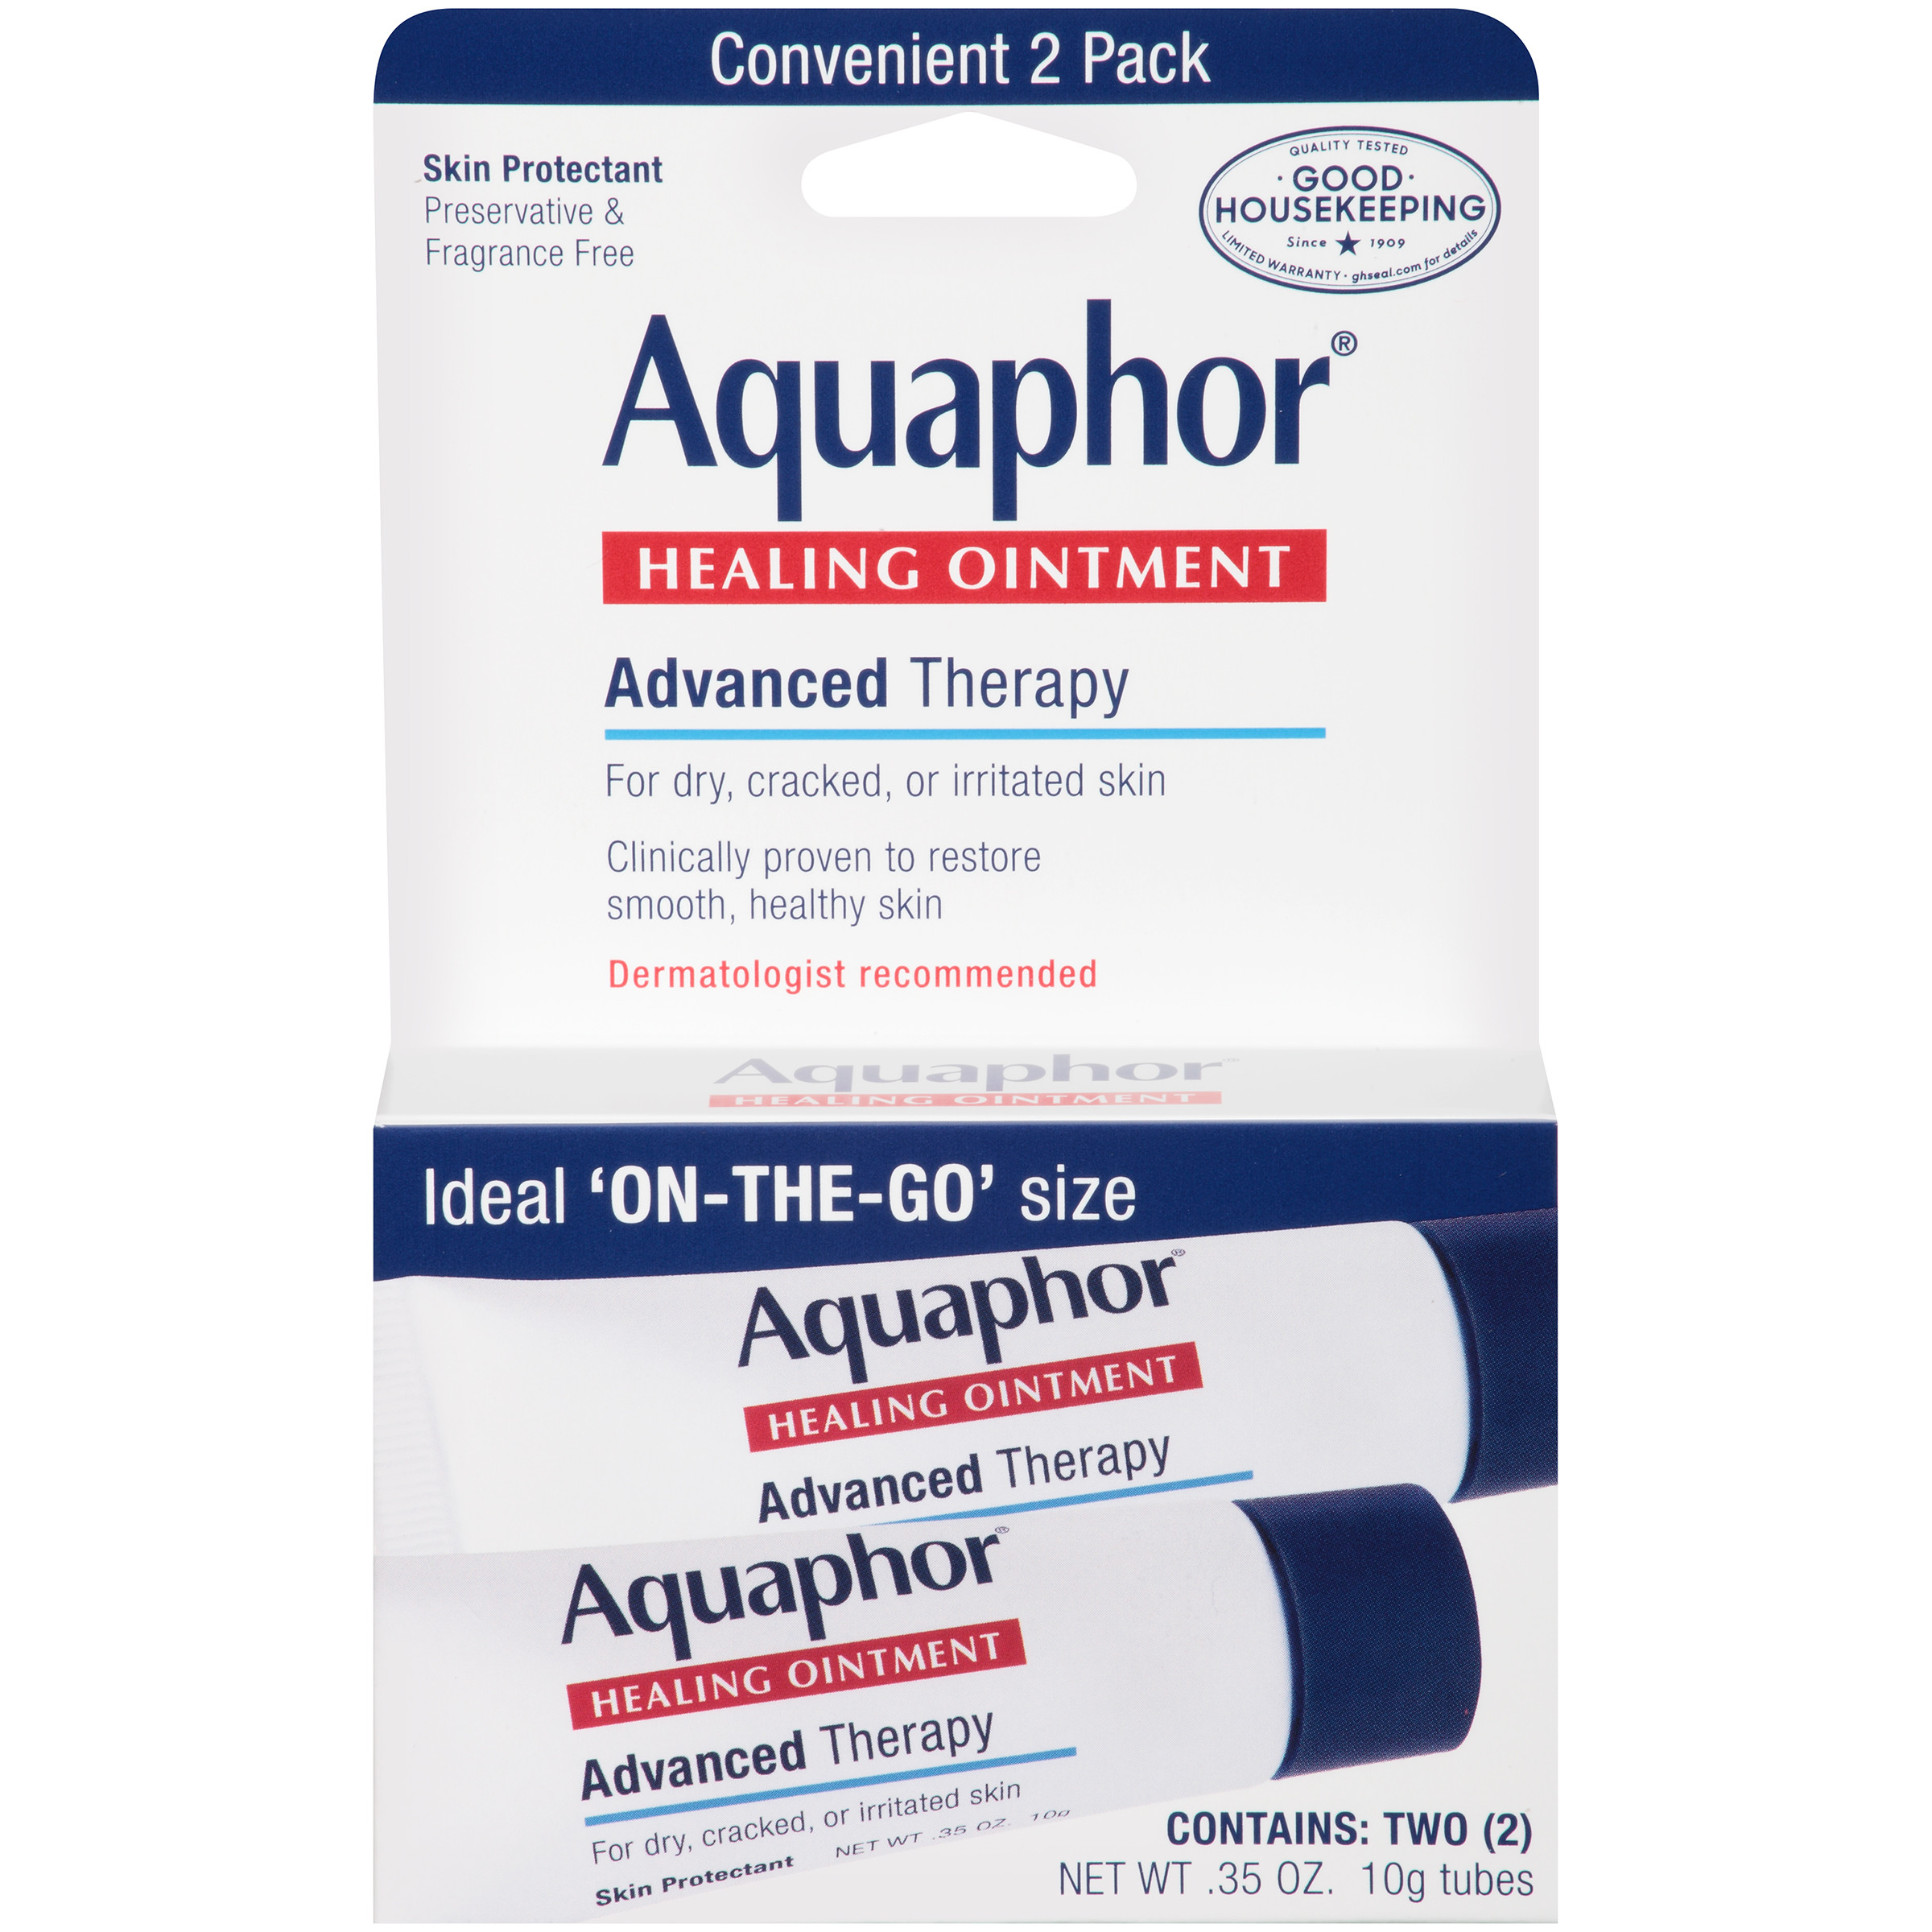 Aquaphor Advanced Therapy Healing Ointment Skin Protectant 2-.35 oz. Tubes